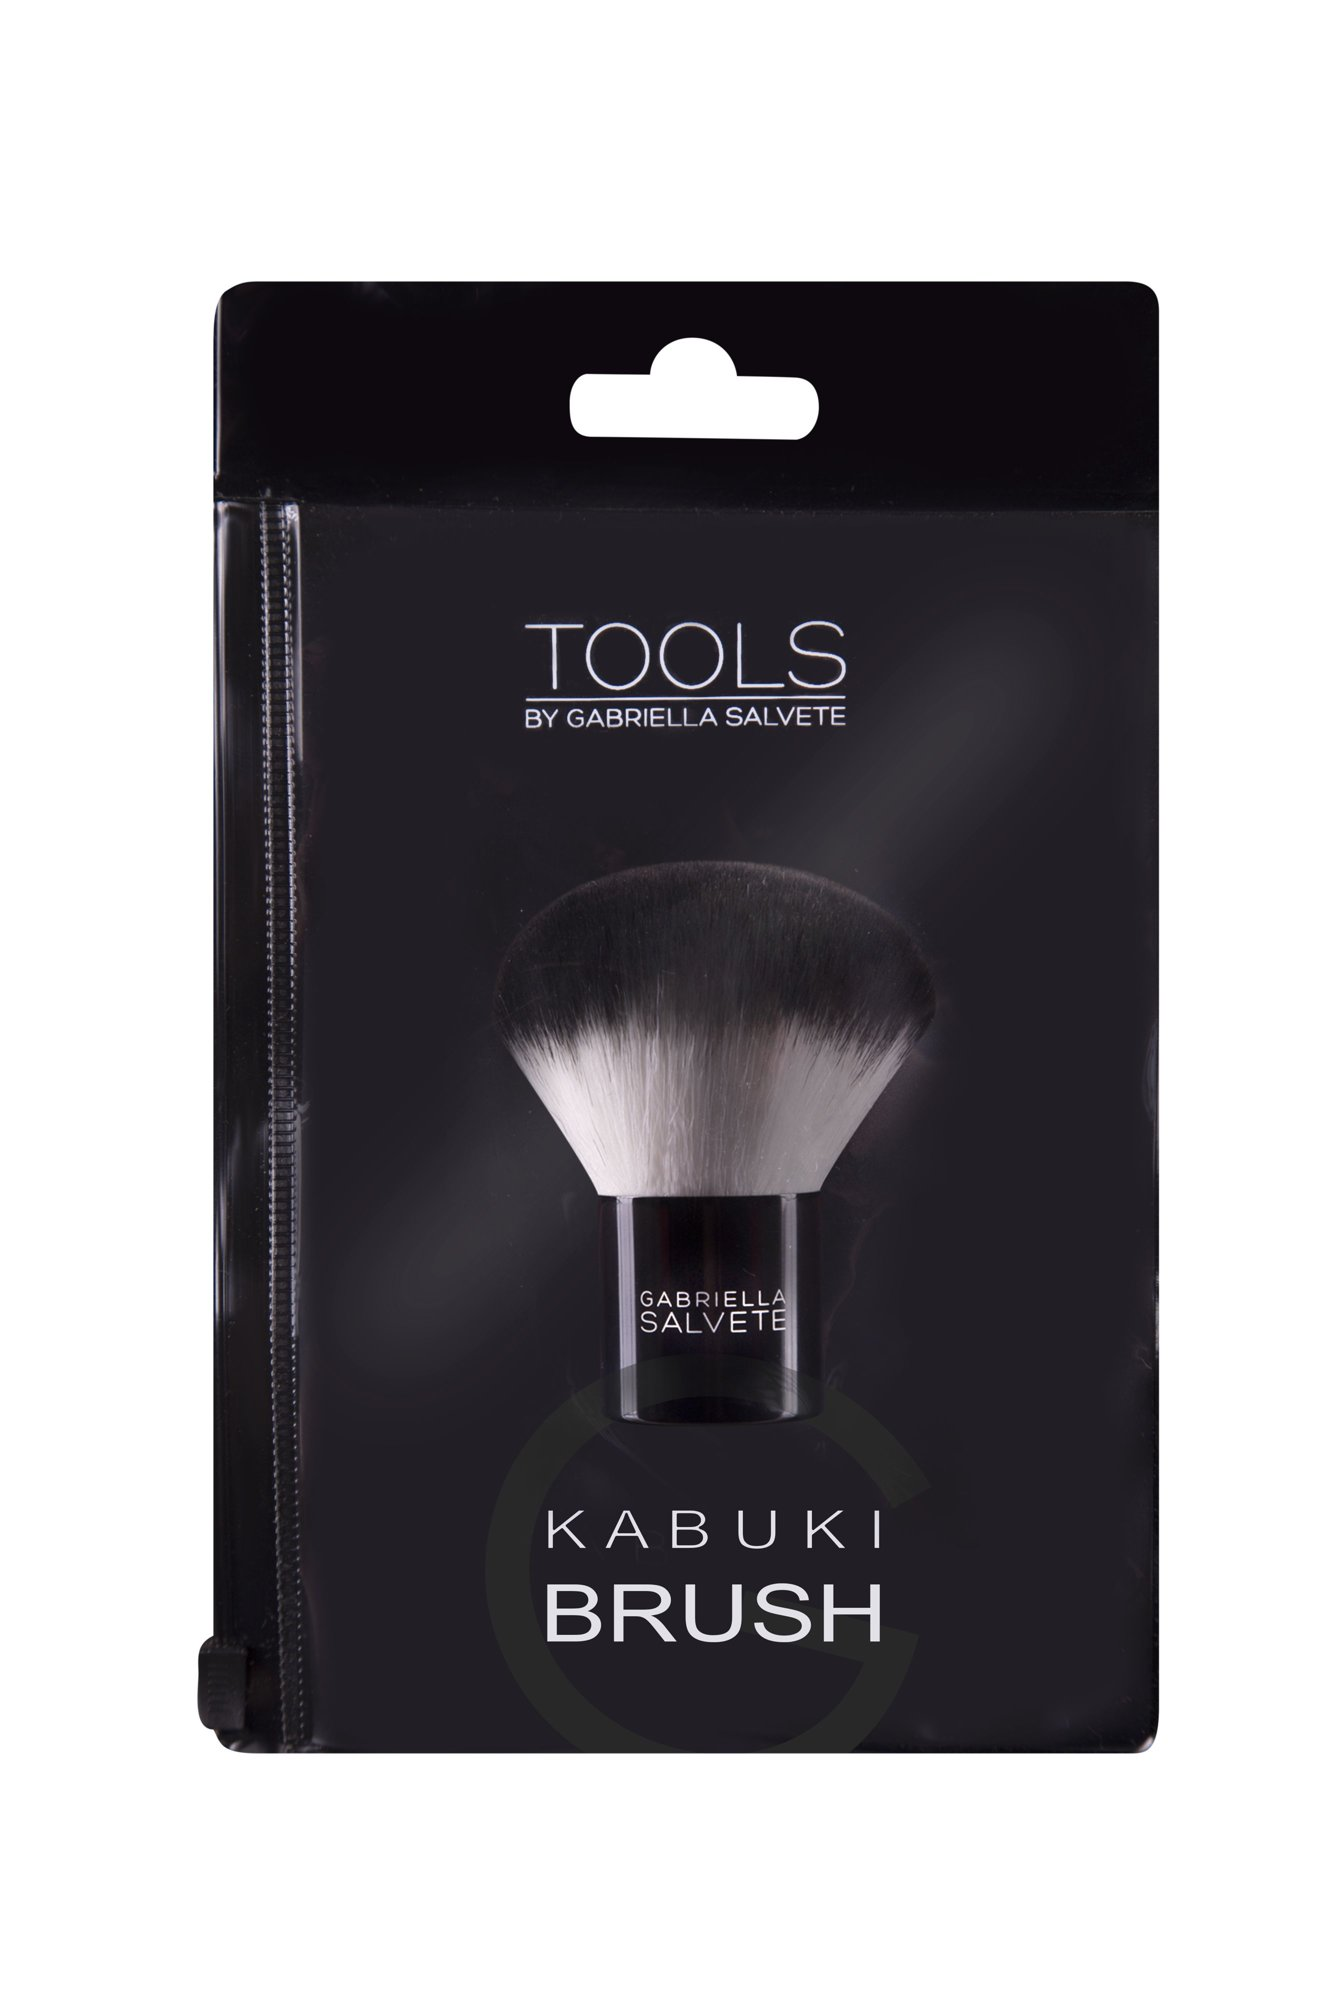 Gabriella Salvete TOOLS Brush 1ml